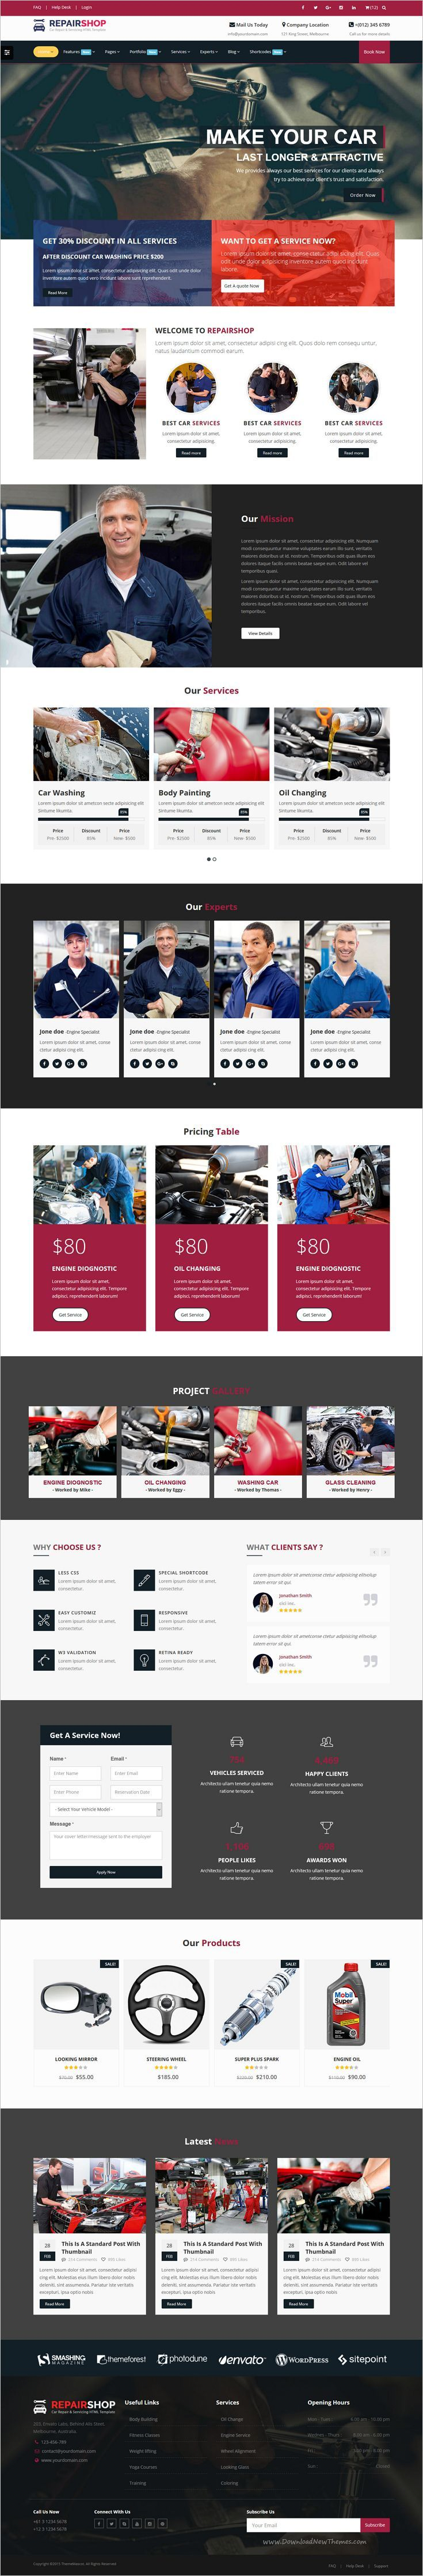 RepairShop is a wonderful responsive #HTML #Bootstrap template for car #repair, garage or #auto center website download now➩ https://themeforest.net/item/repairshop-car-repair-car-wash-responsive-html5-template/18955715?ref=Datasata